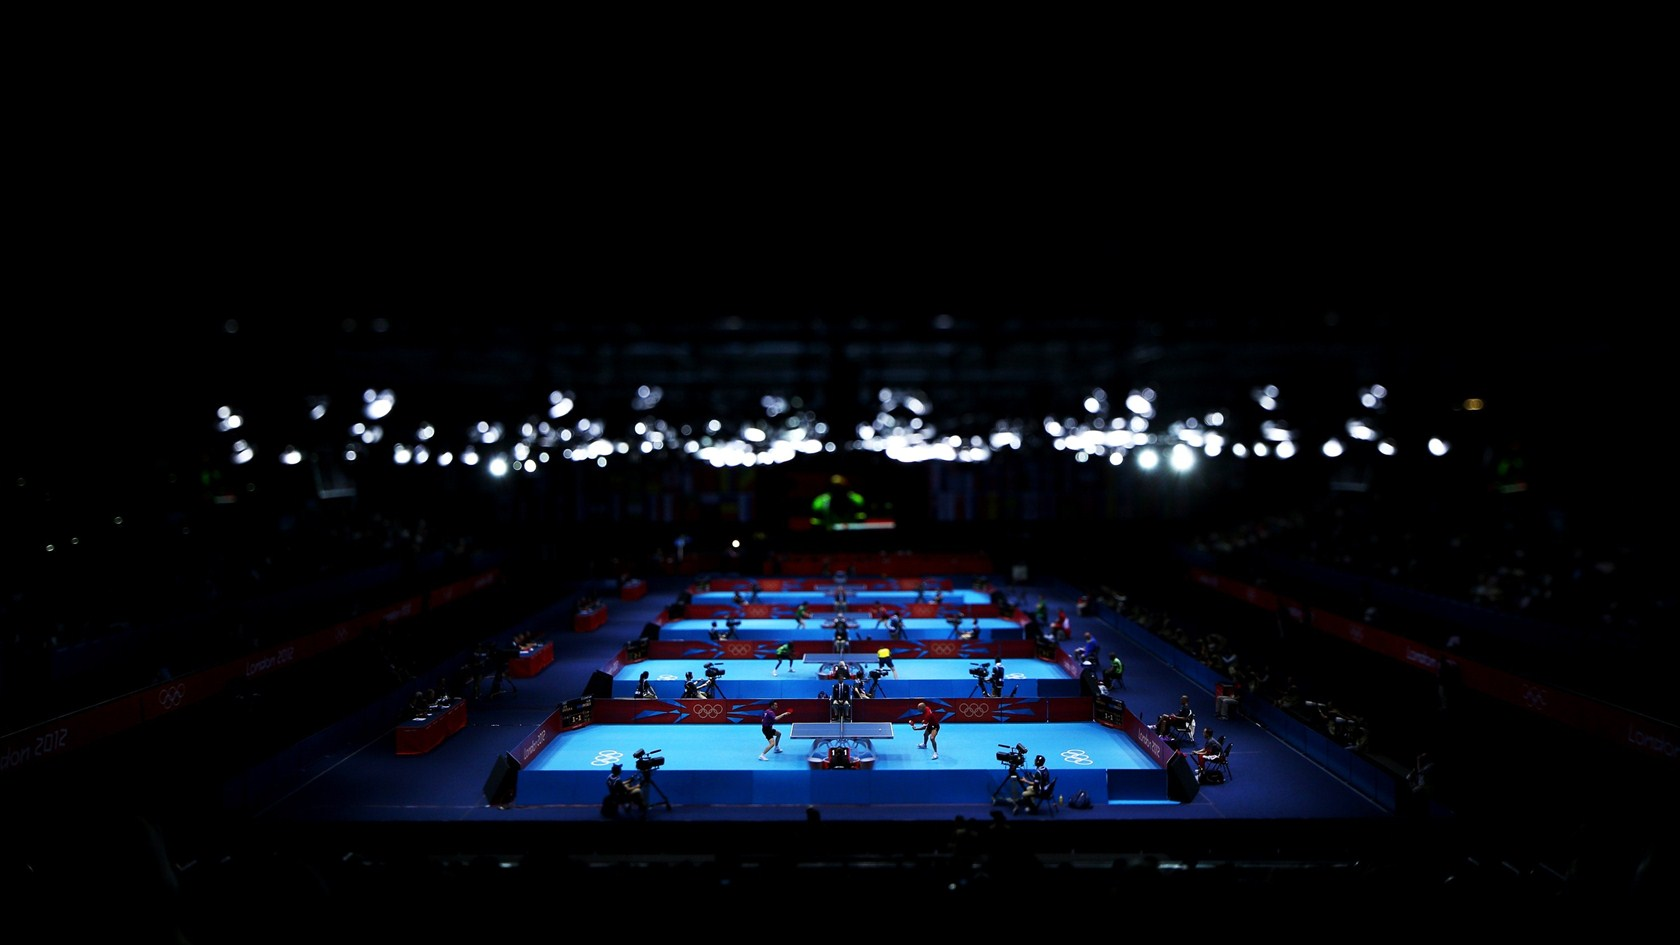 An inside snapshot of the ExCeL Hall Table Tennis HD Wallpaper 1680x945